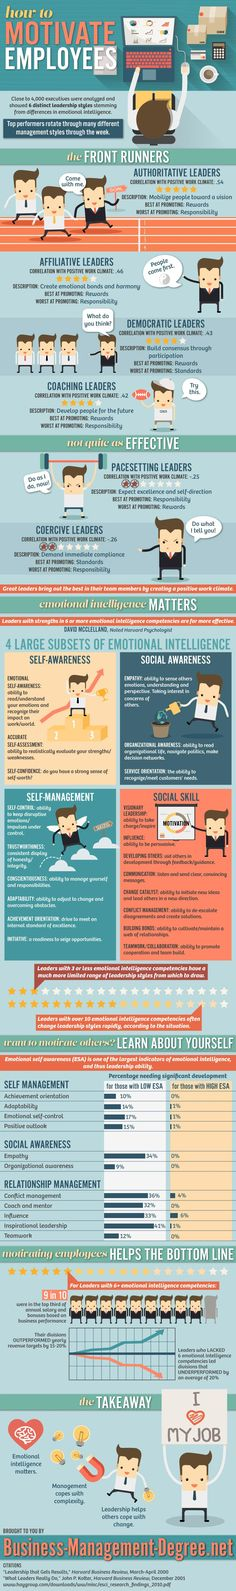 How to Become an Inspirational Leader (Infographic) #leaders #leadership #motivation